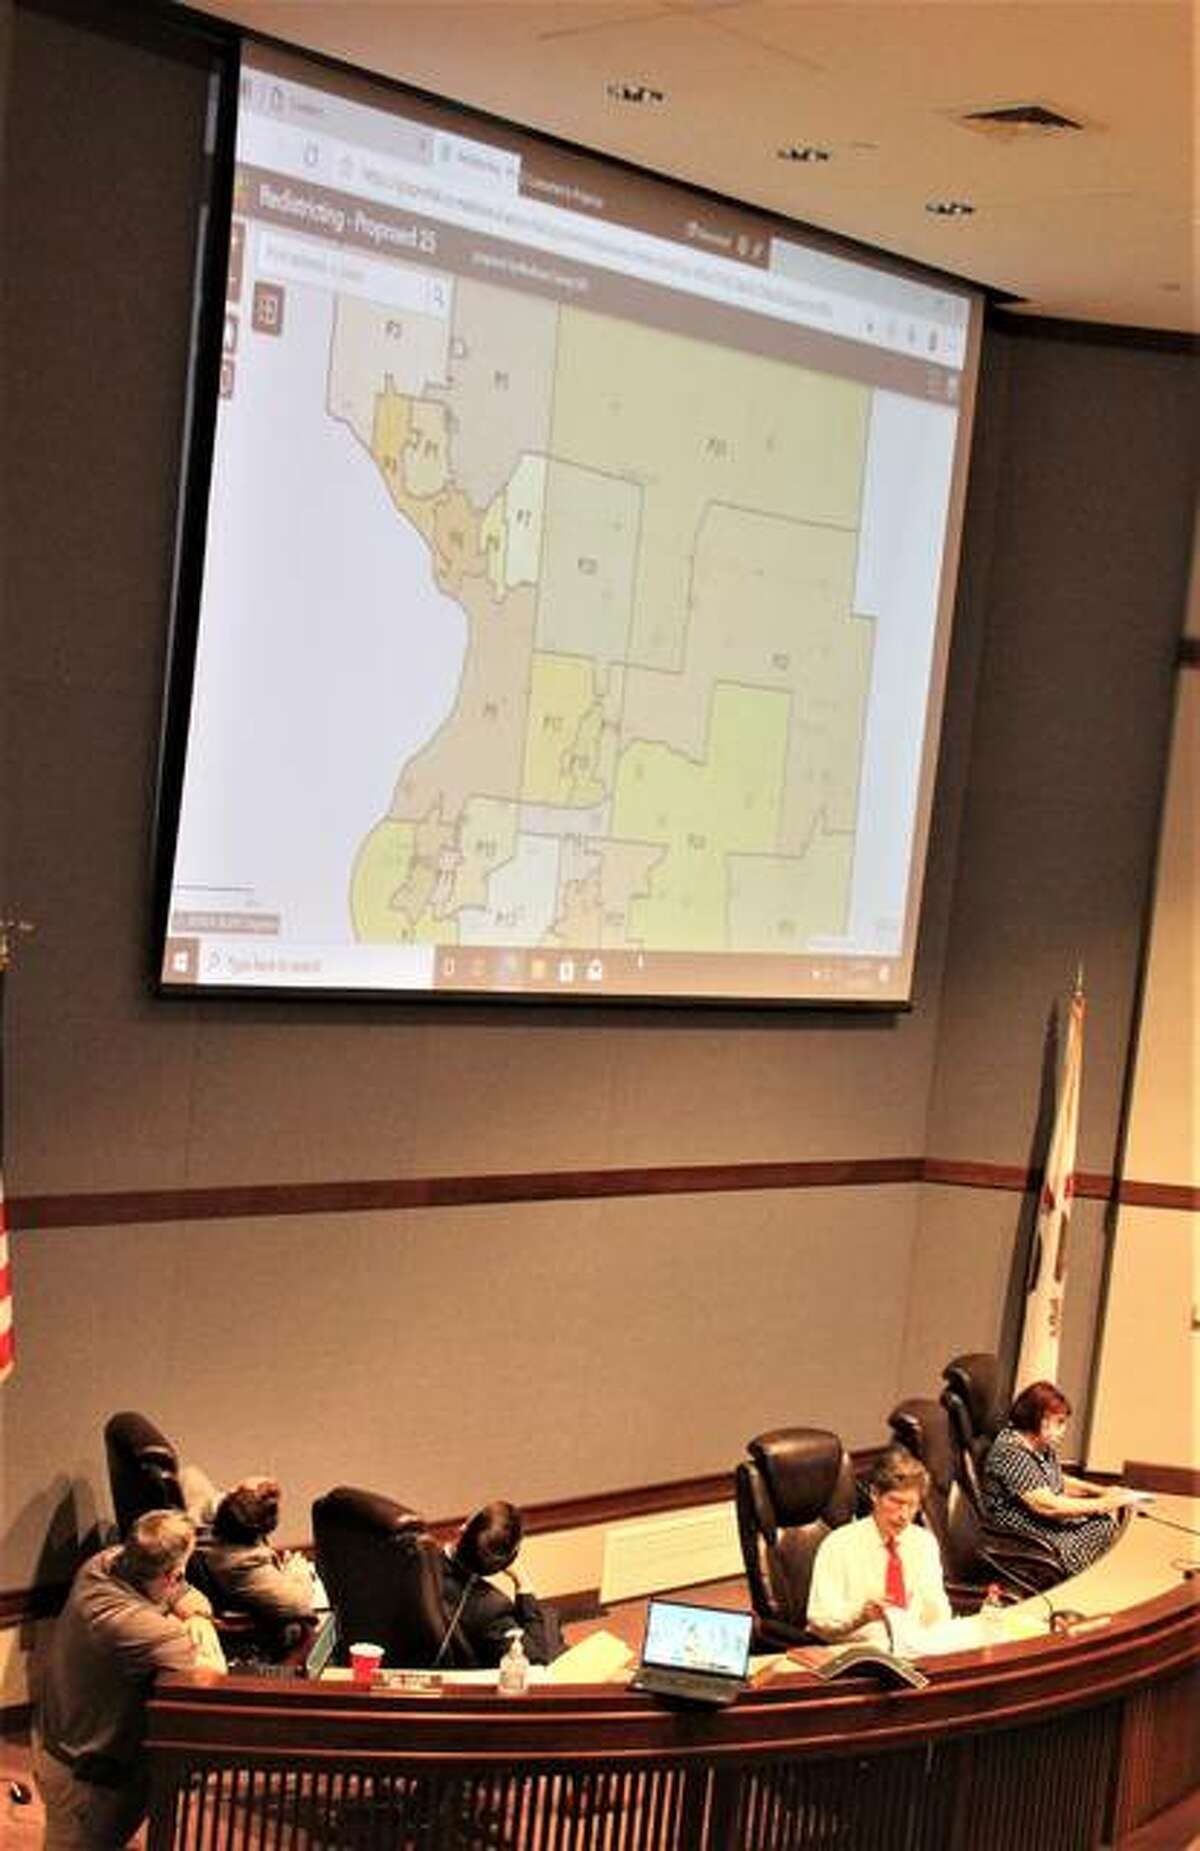 A proposed map of redrawn county board districts was presented at a special meeting Tuesday in Edwardsville. The meeting was the first in-person meeting by the full board in more than a year. Board Chairman Kurt Prenzler had proposed the map reducing the number of board members to 25. The districts must be redrawn every 10 years after the completion of the decennial census.